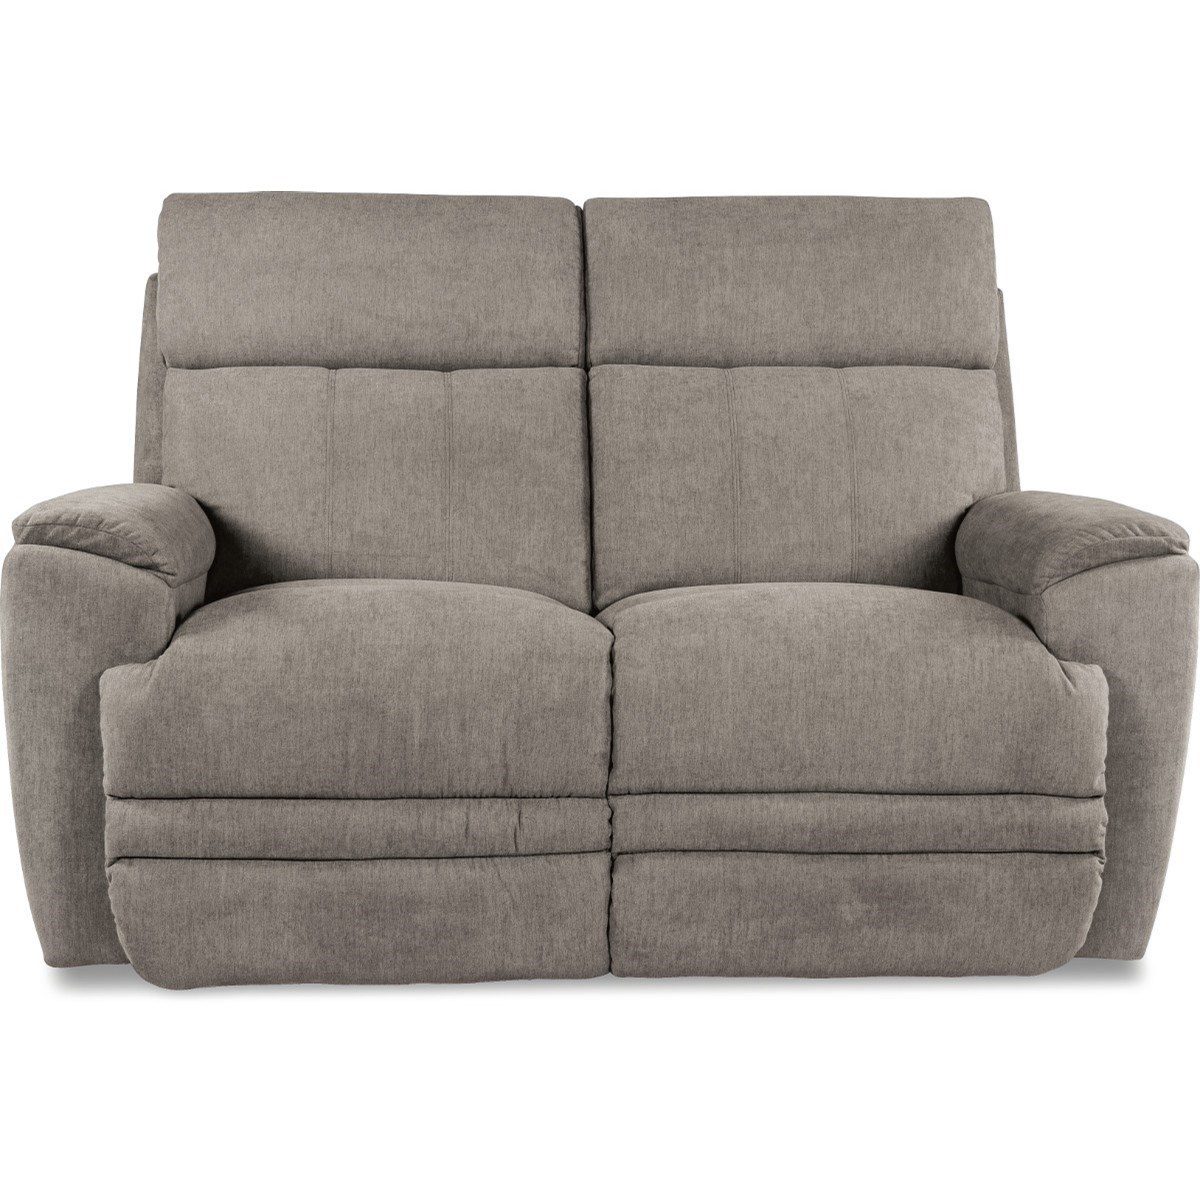 Casual Power Reclining Loveseat with USB Charging Ports